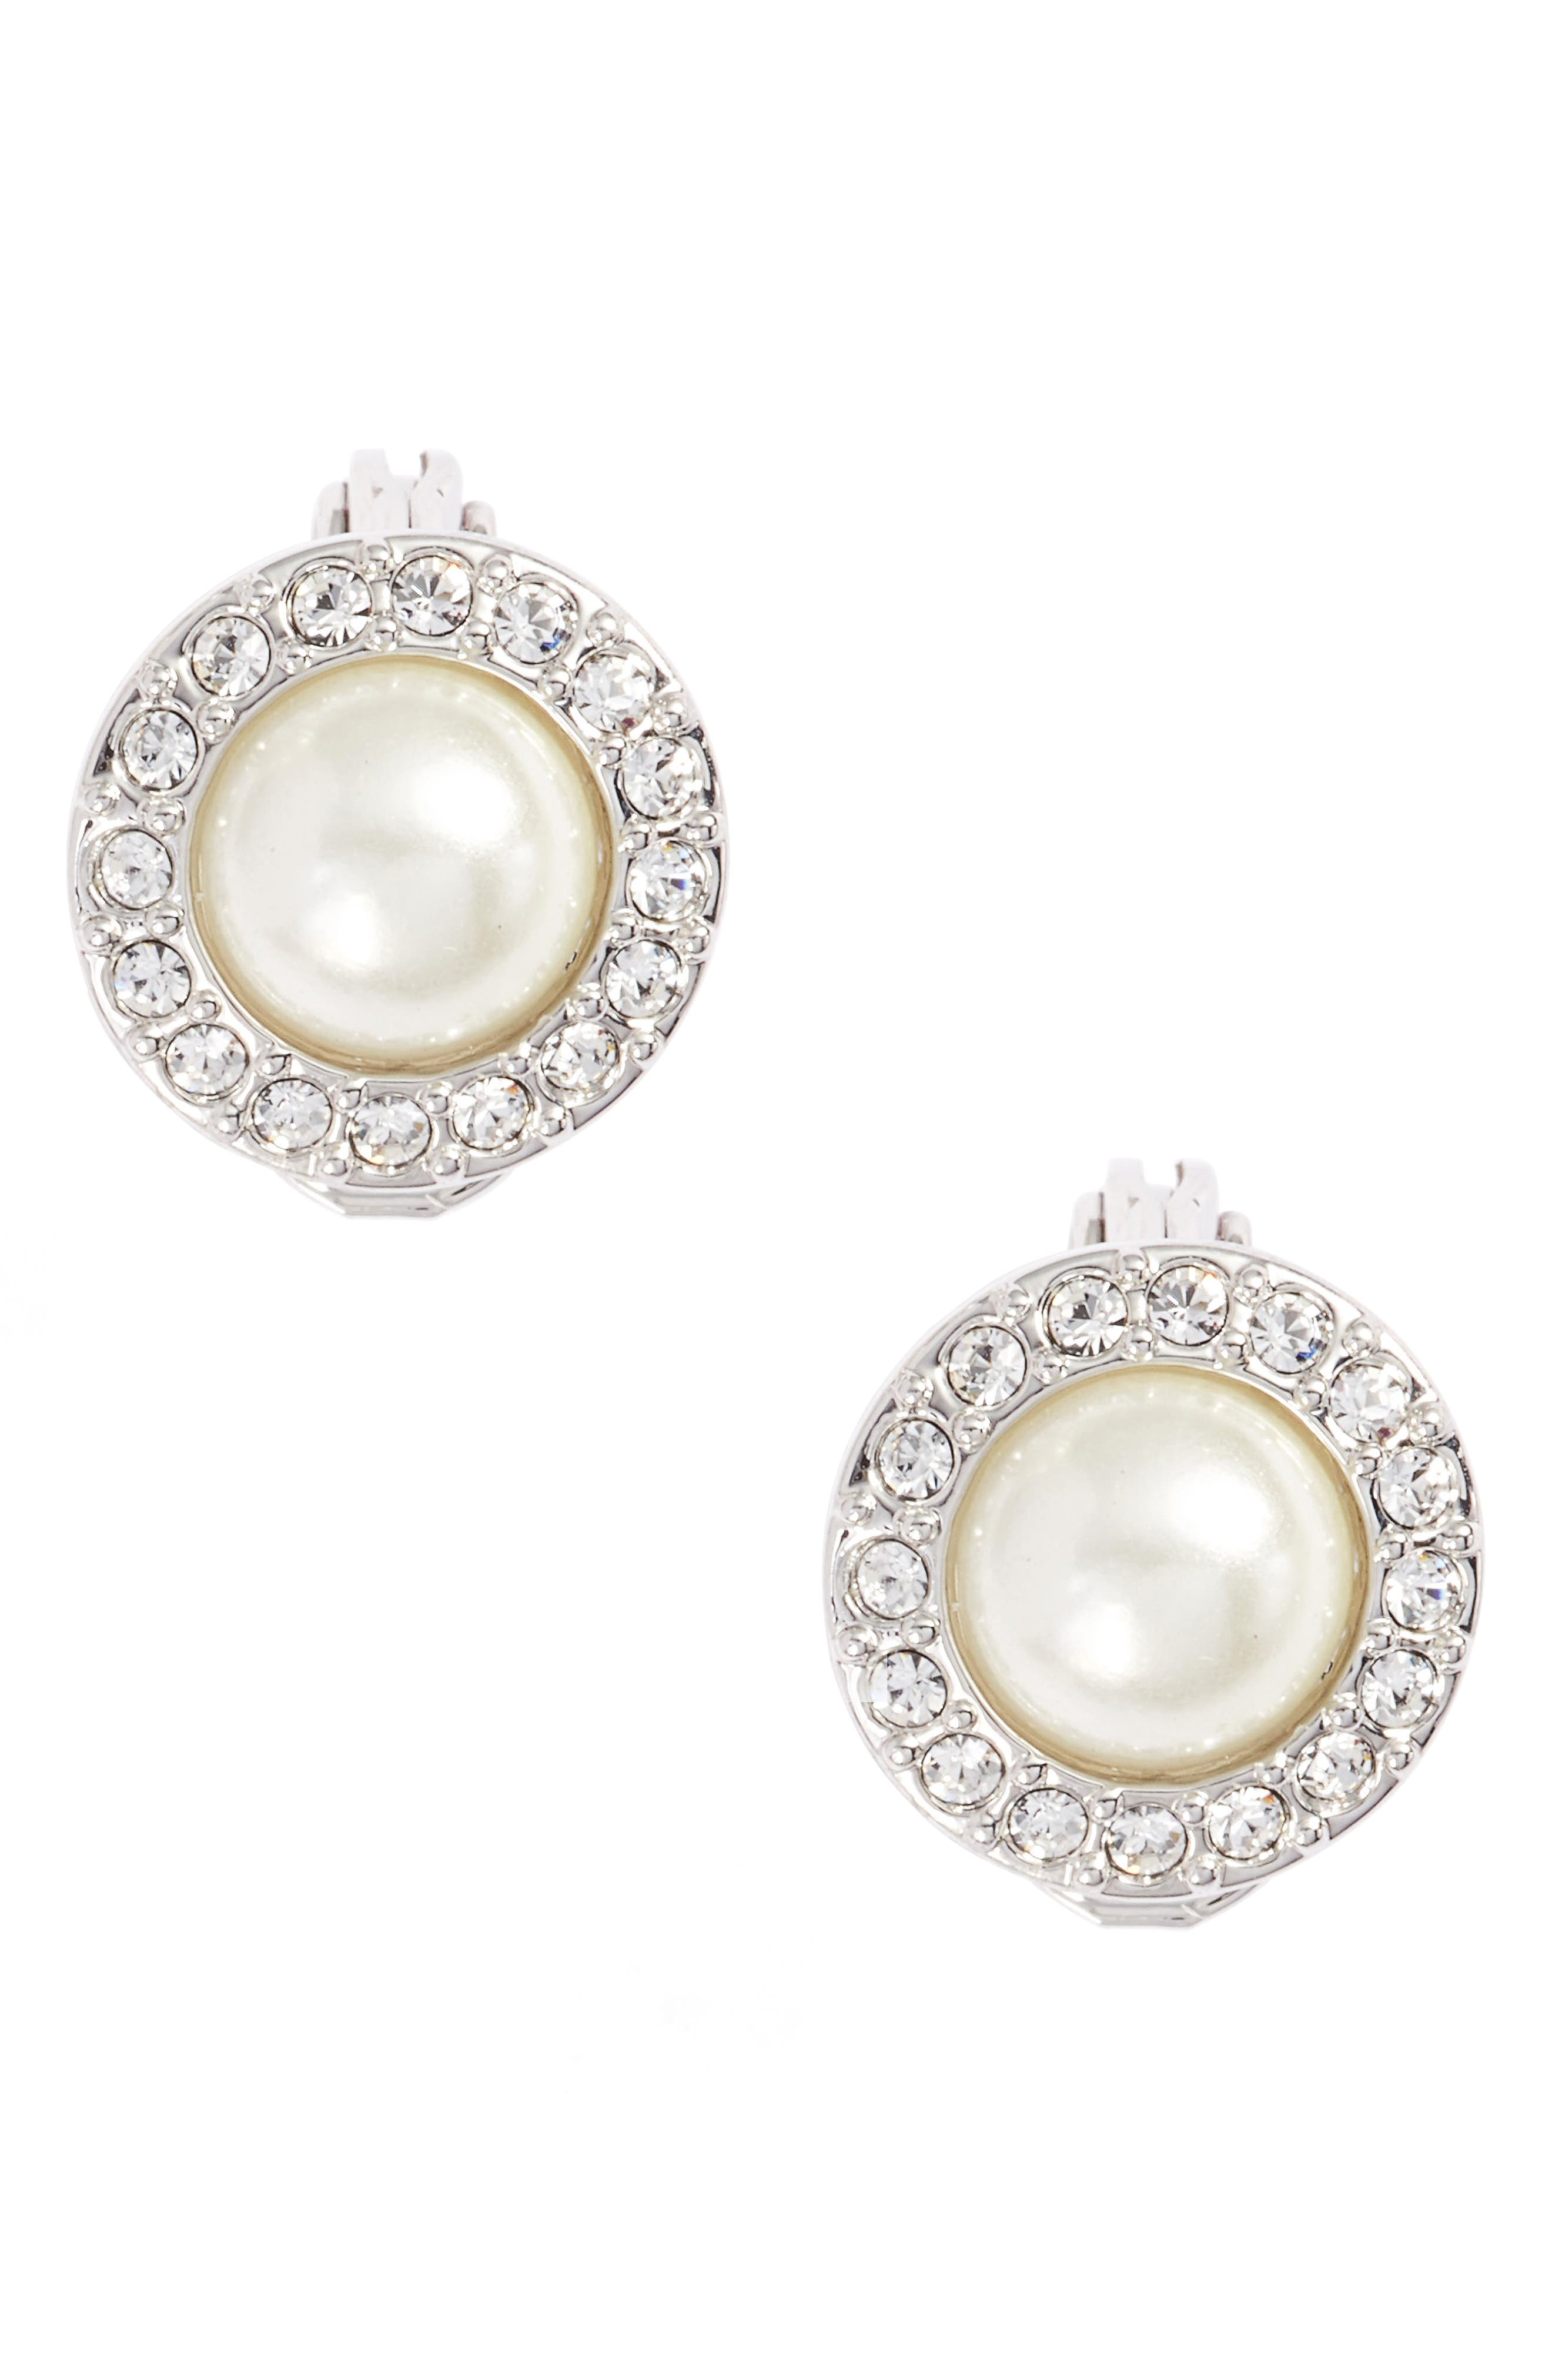 Givenchy Imitation Pearl Clip-On Earrings